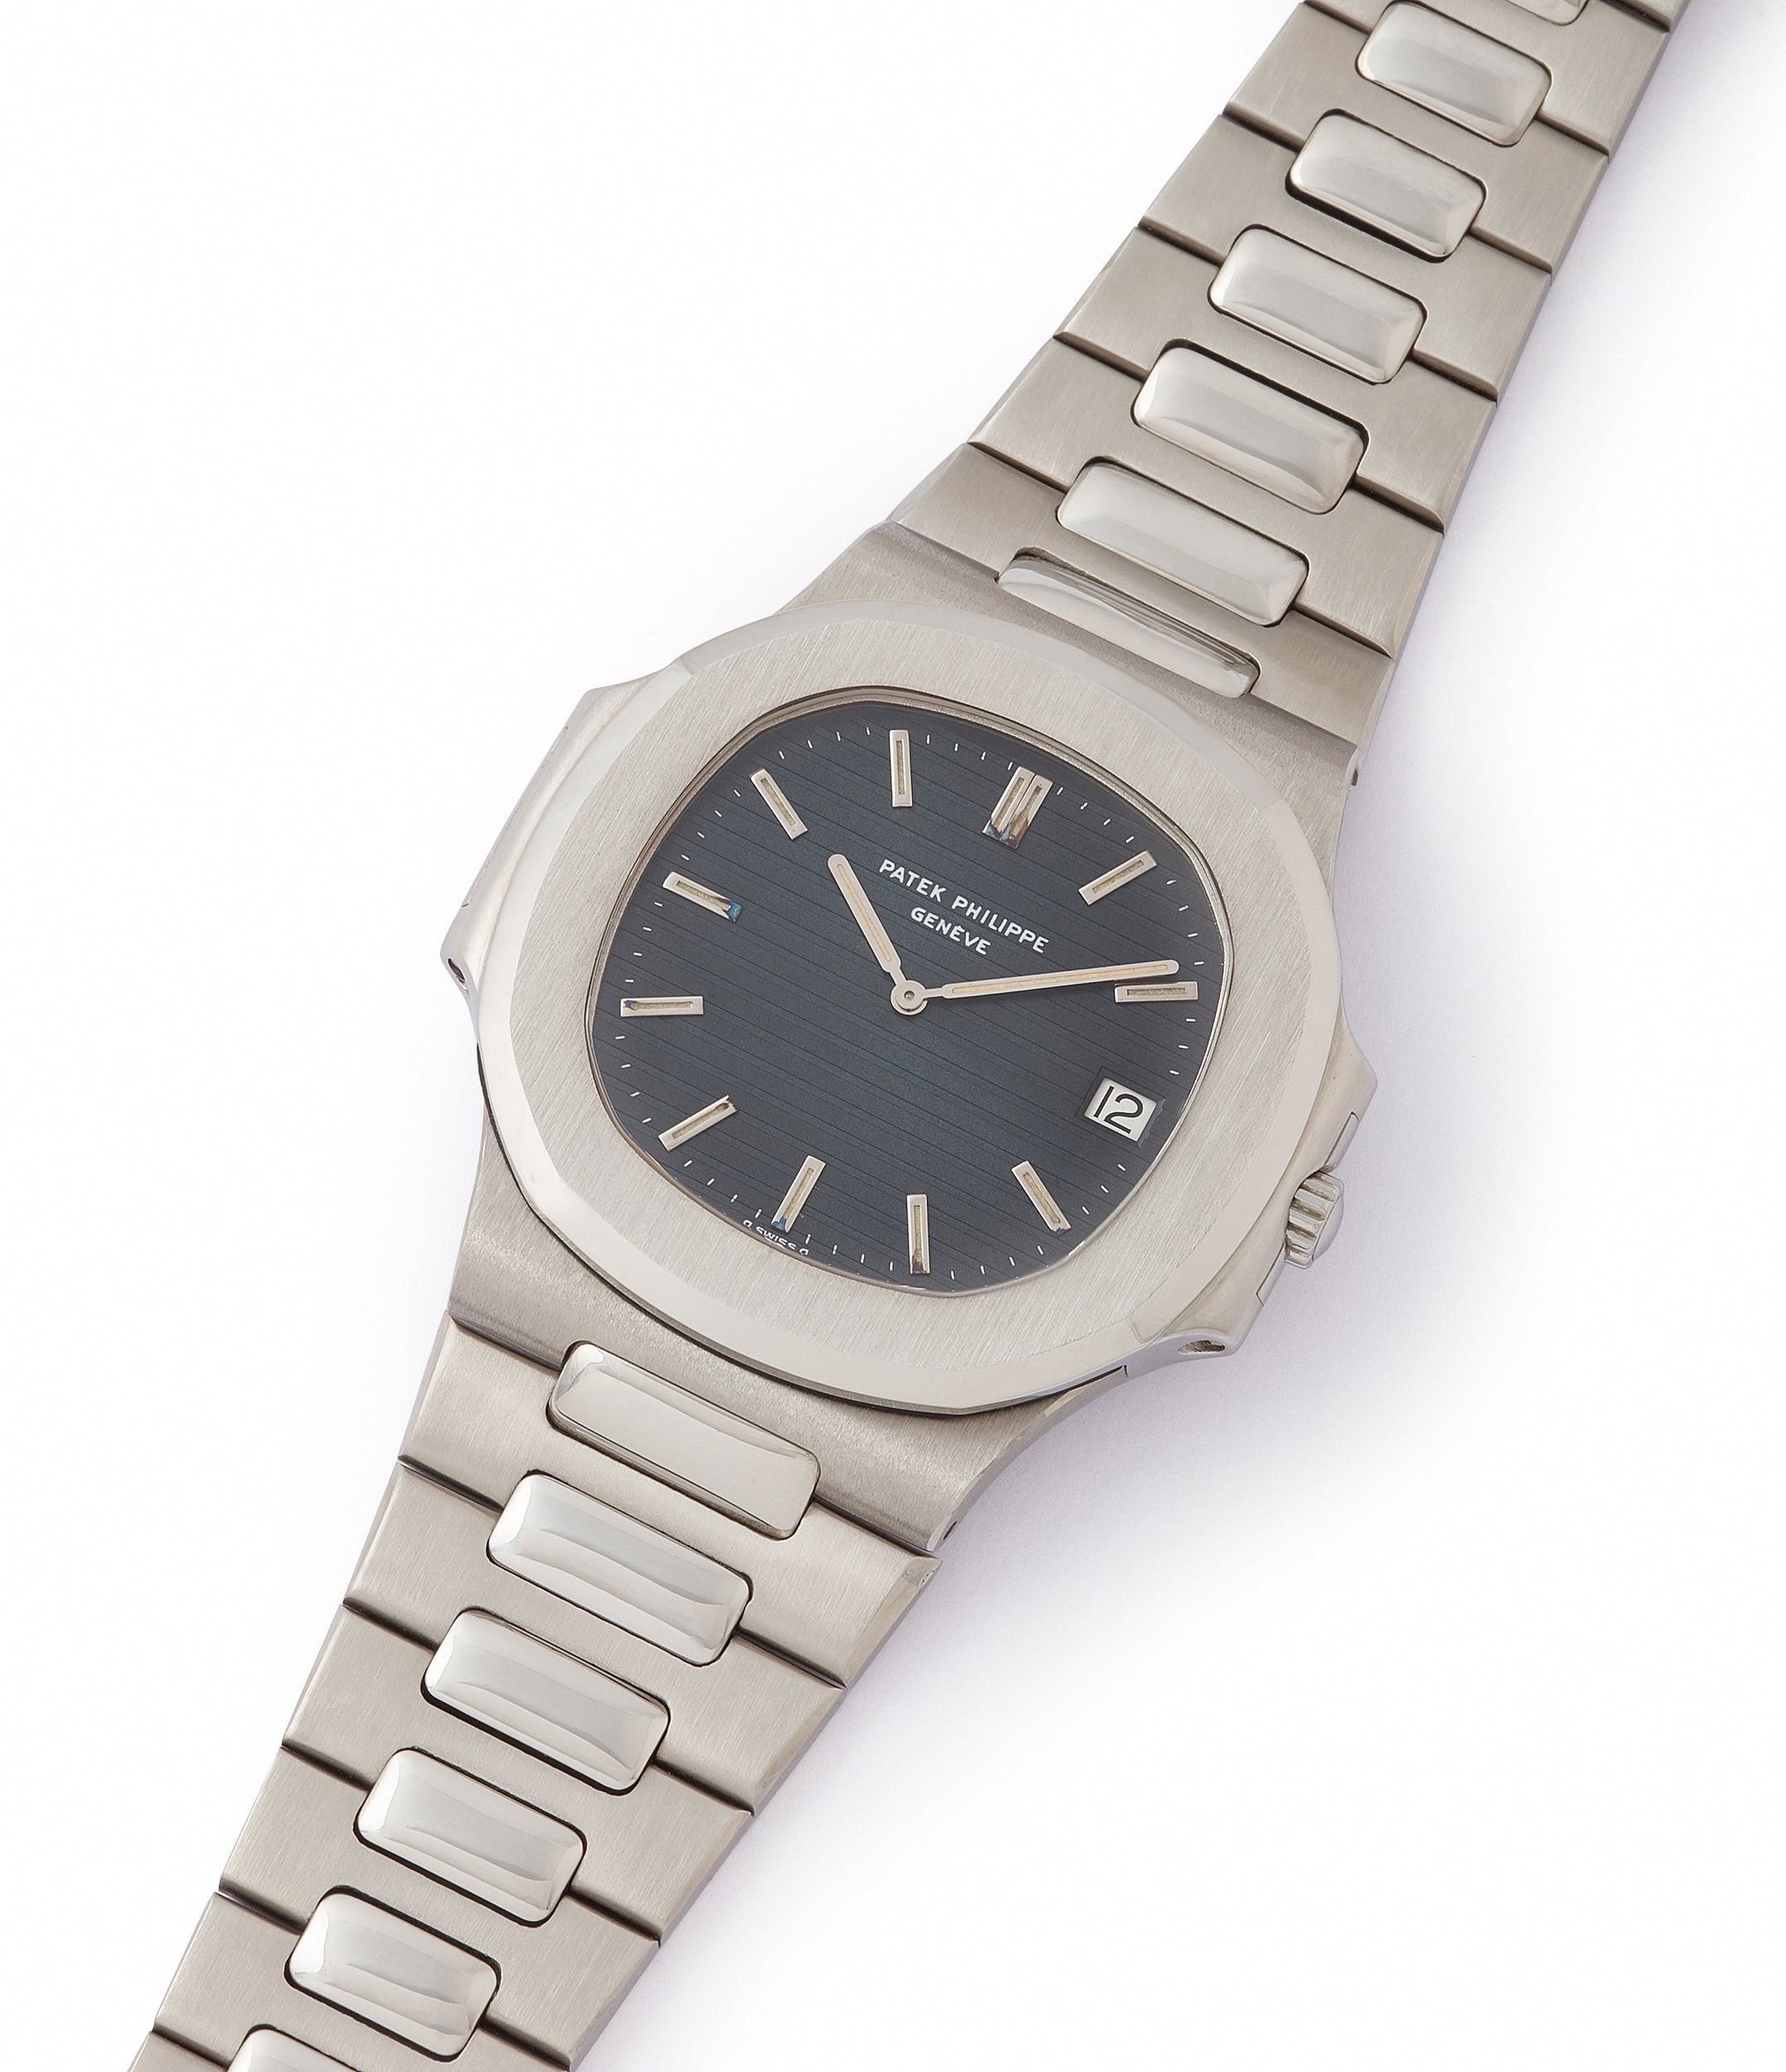 shop vintage Patek Philippe Nautilus 3700/001 full set sport watch for sale online at A Collected Man London UK specialist of rare watches